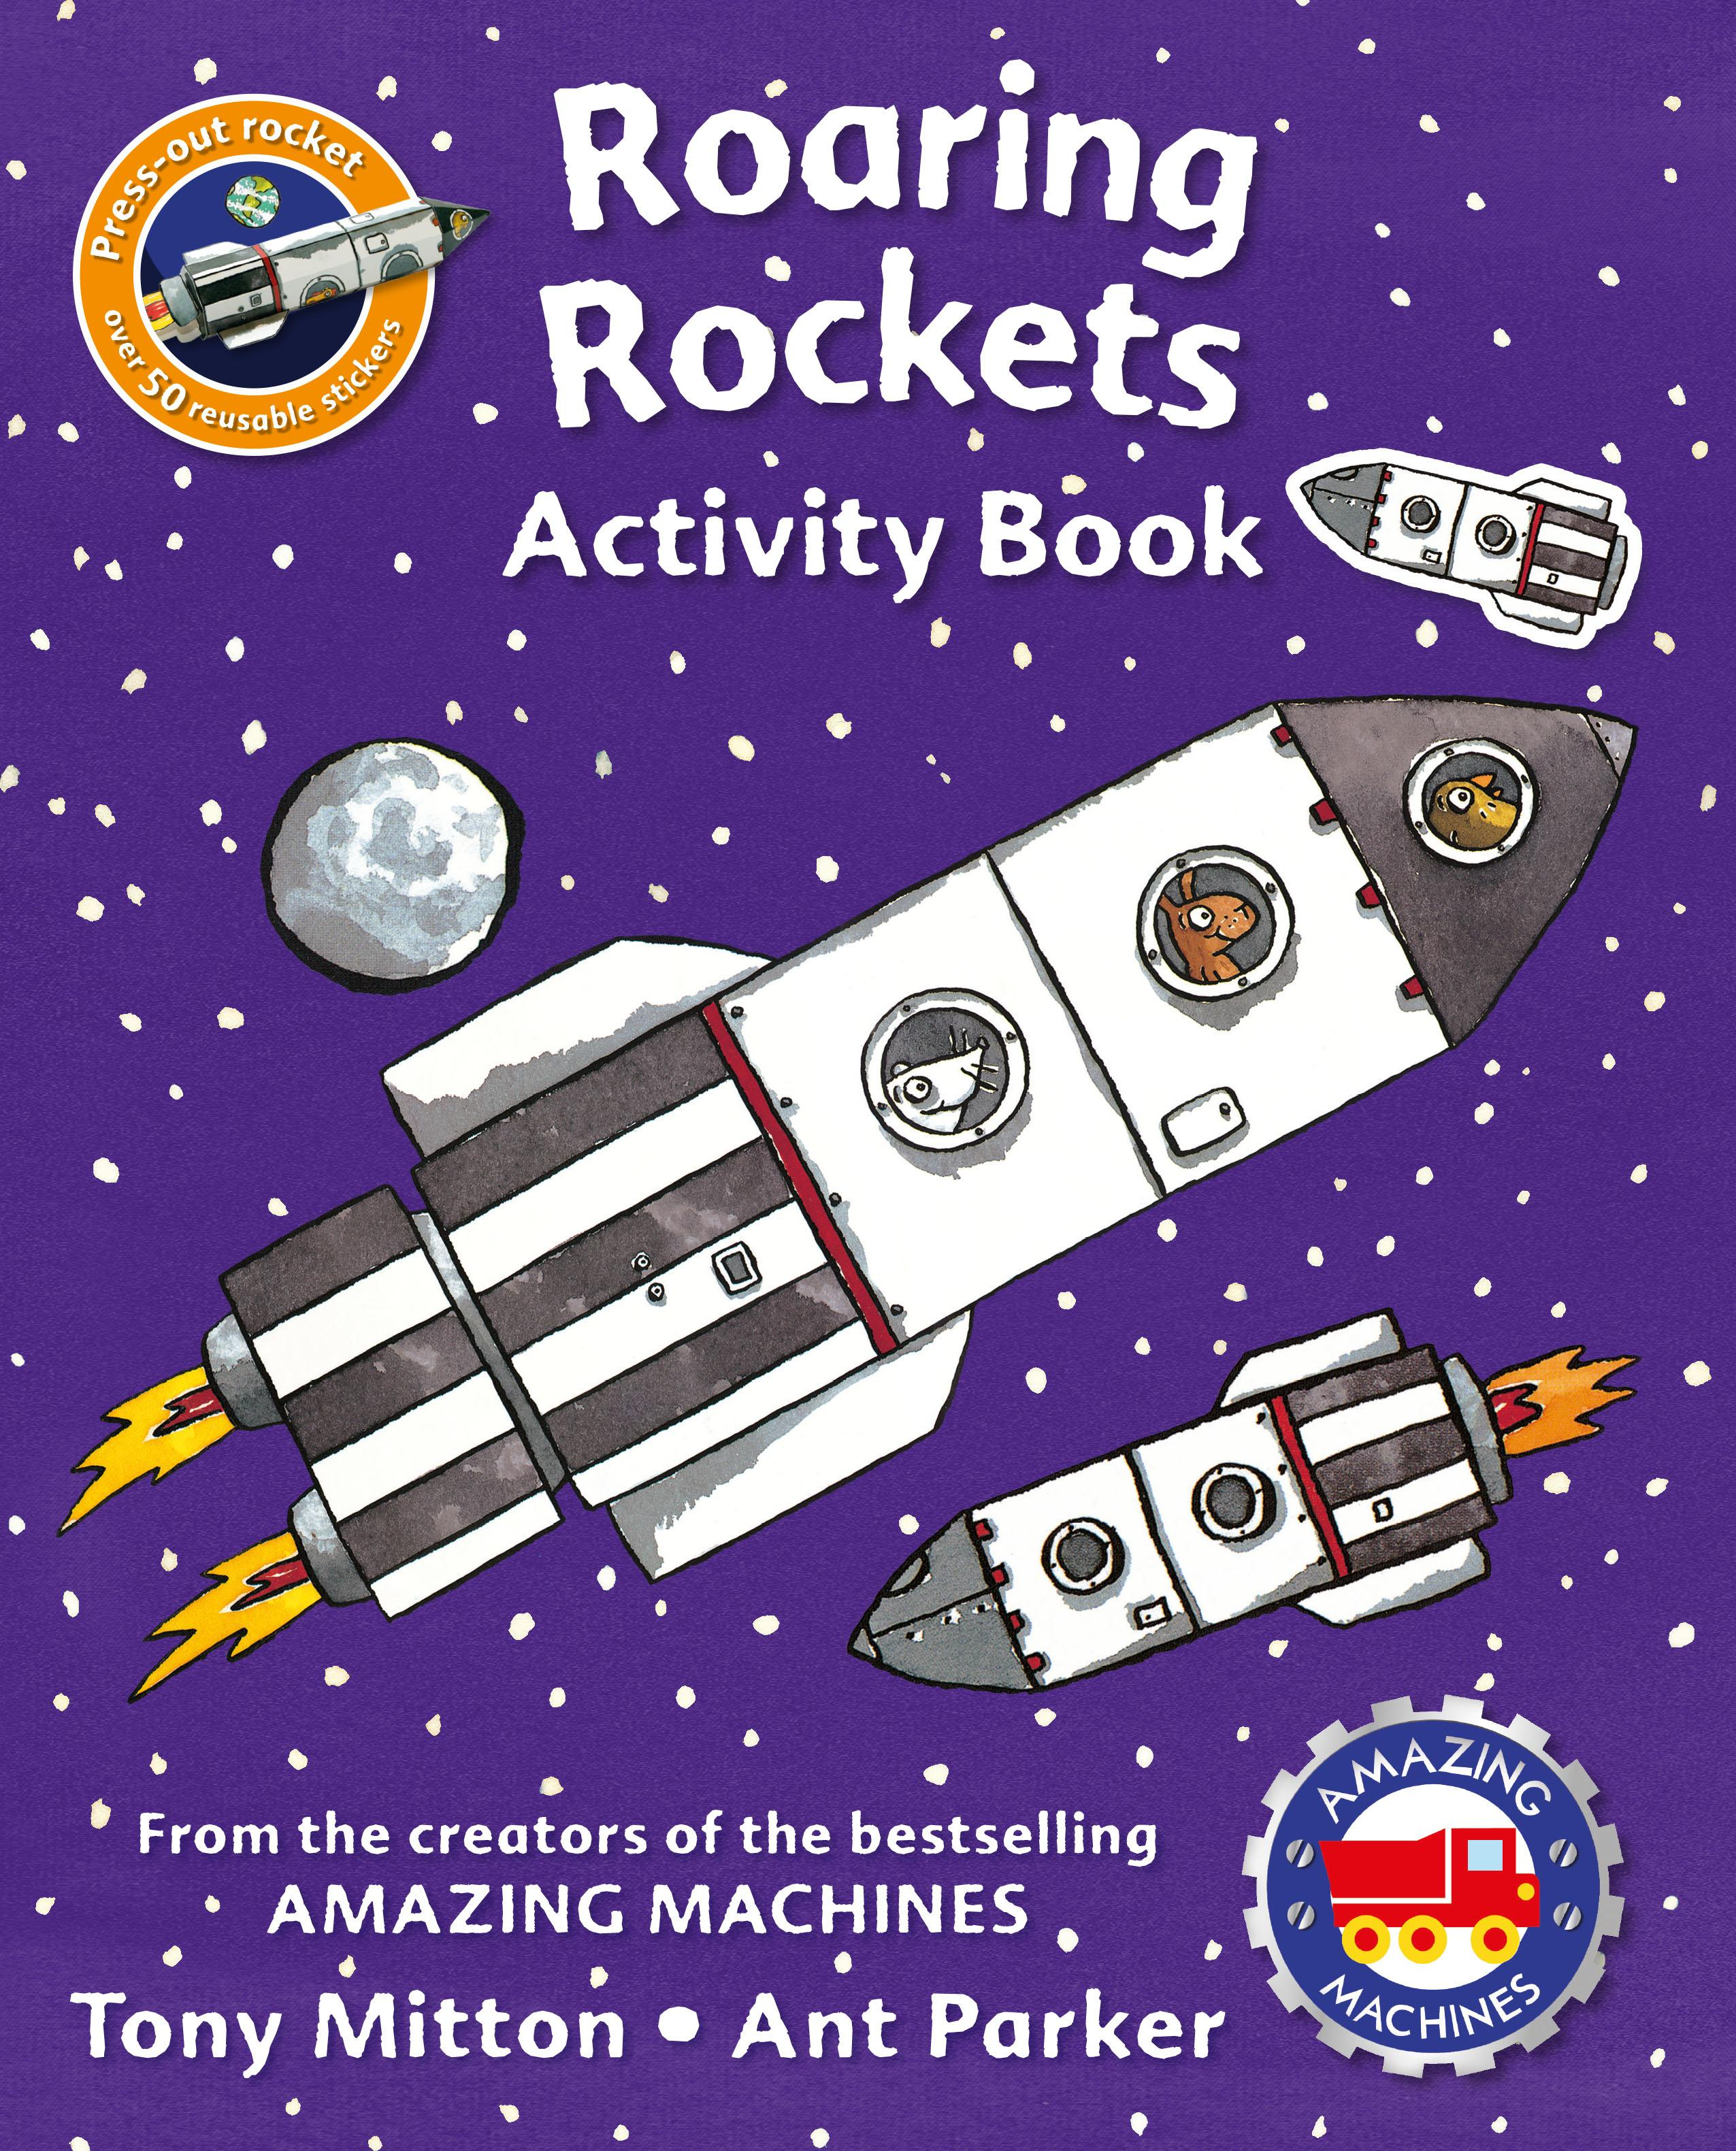 Amazing Machines Roaring Rockets Activity Book by Kingfisher